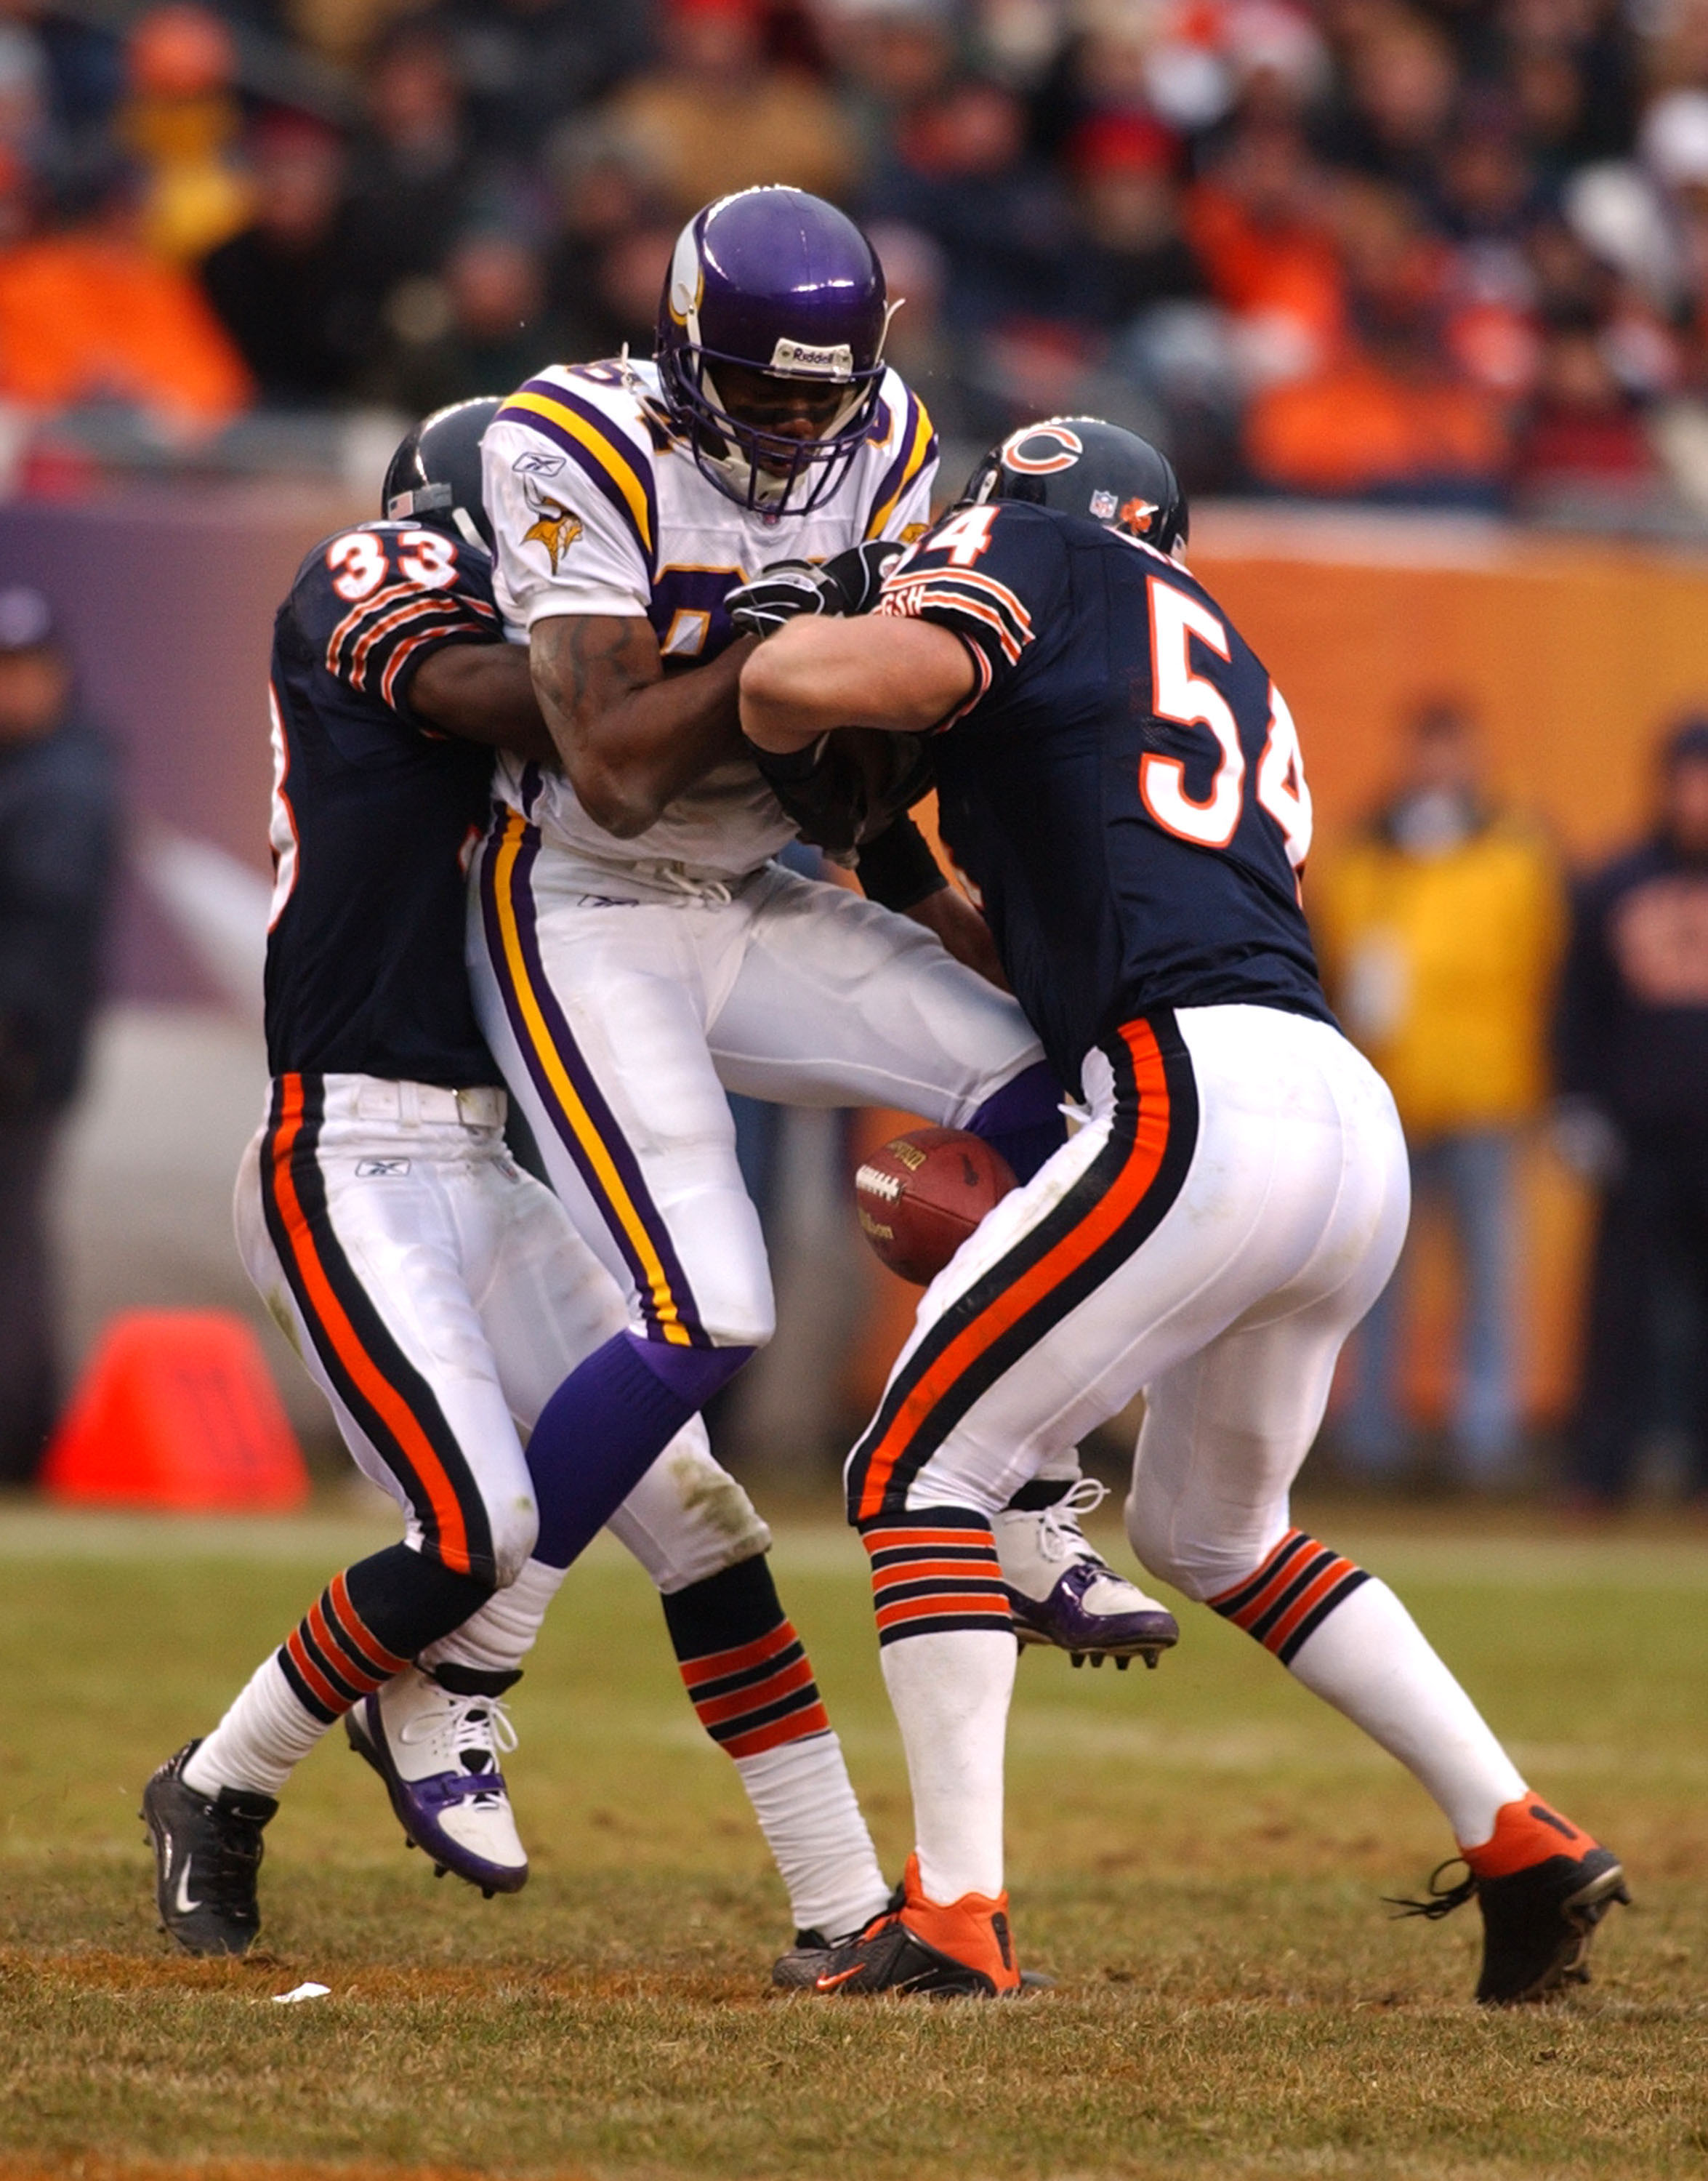 CHICAGO - DECEMBER 14: Receiver Randy Moss #84 of the Minnesota Vikings is hit and drops the ball by linebacker Brian Urlacher #54 and cornerback Charles Tillman #33 of the Chicago Bears during a game on December 14, 2003 at Soldier Field in Chicago, Illi